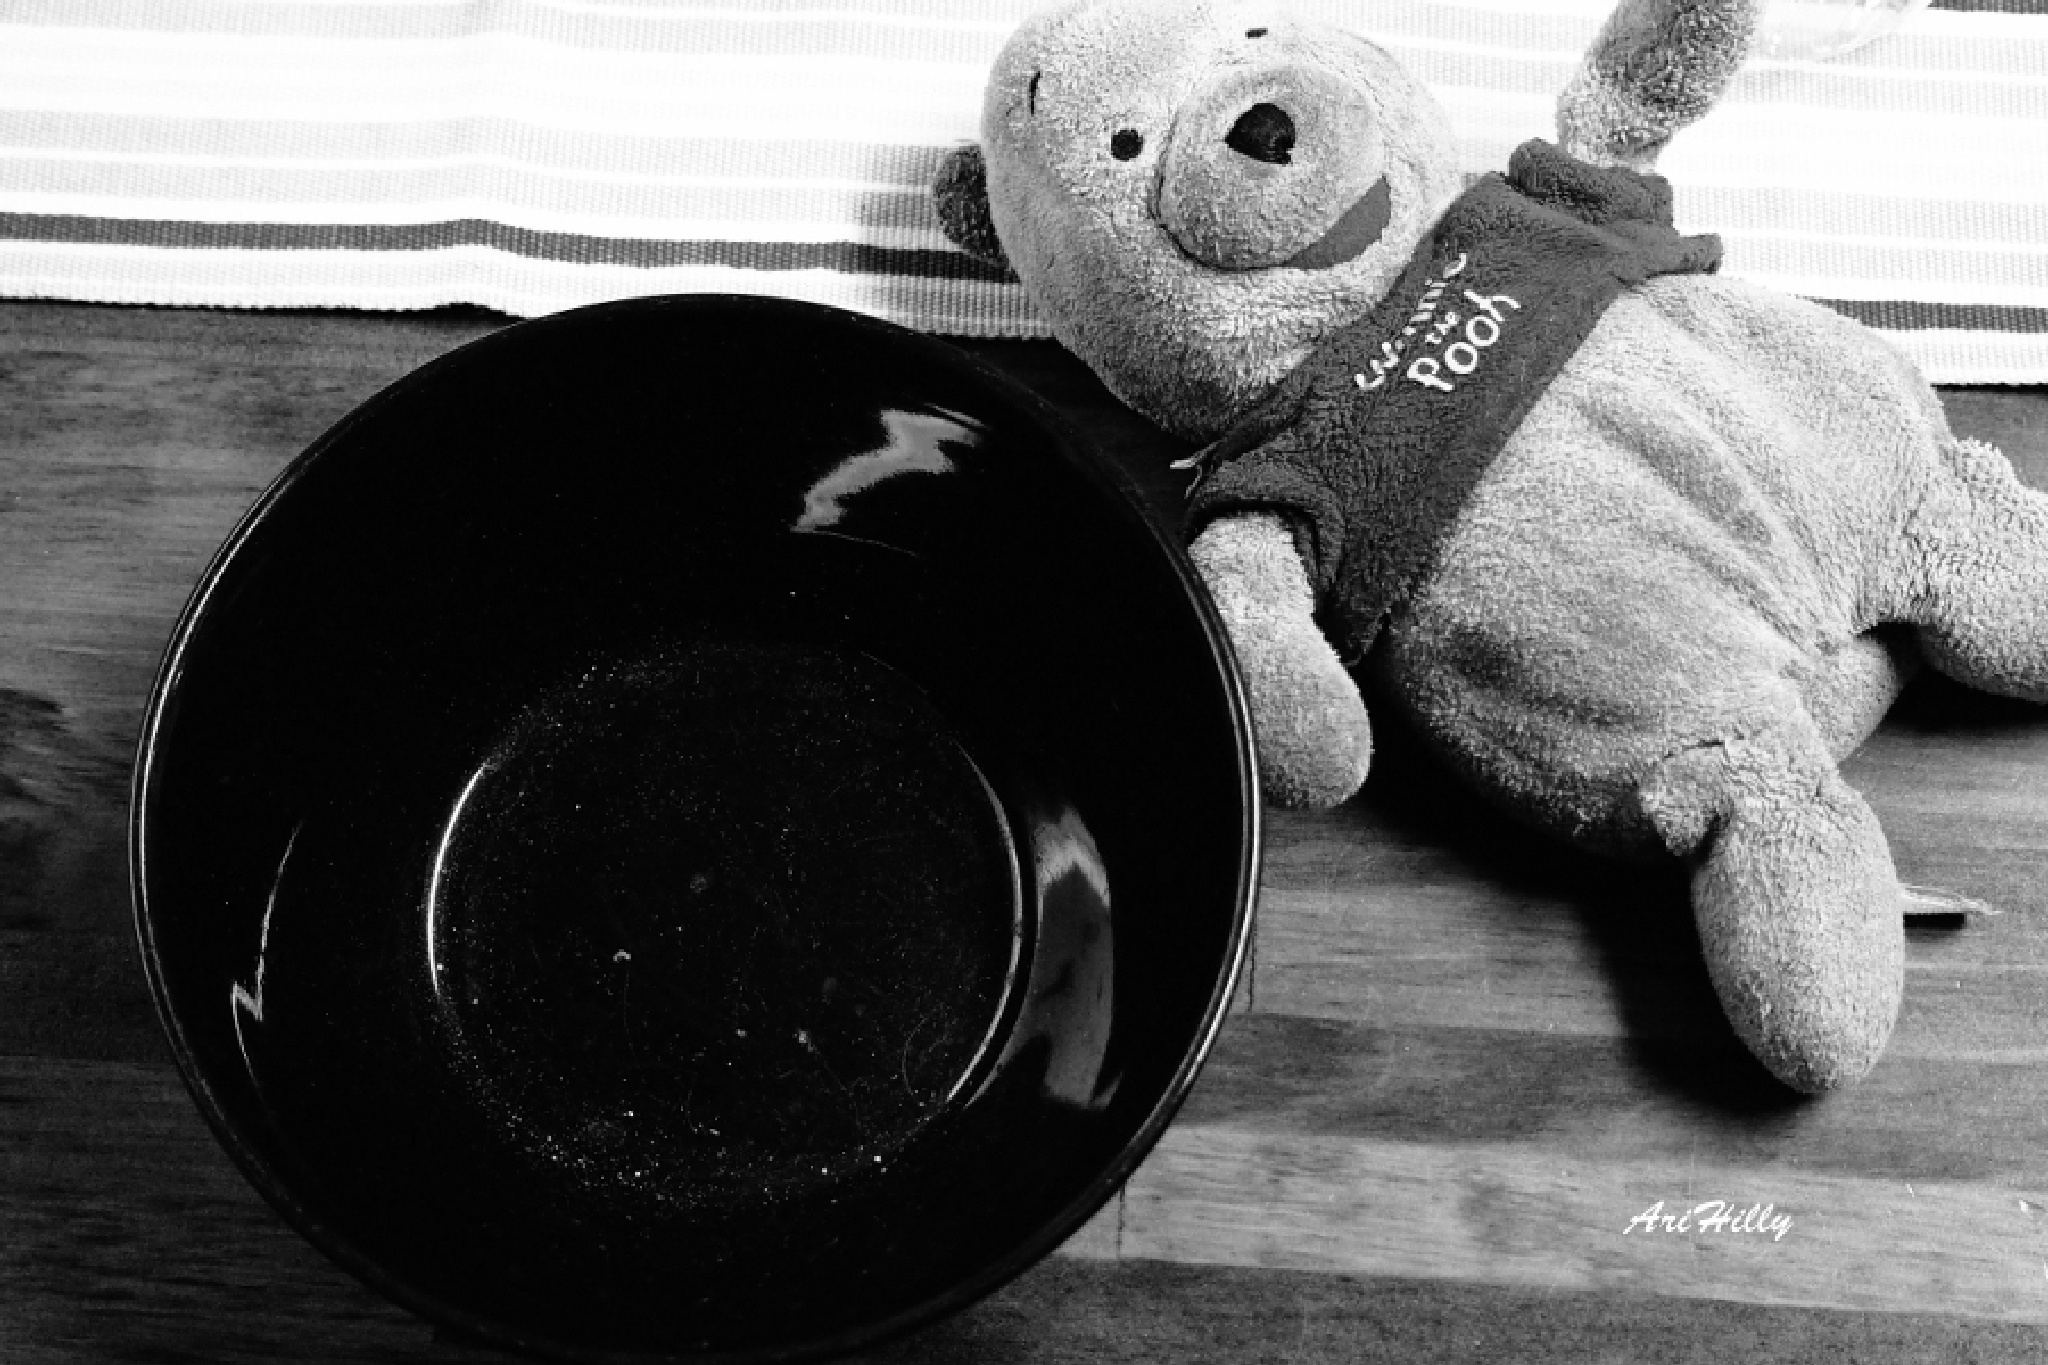 """""""Someone tasted my porridge - and eaten it all"""", said Little Bear by AriHilly"""